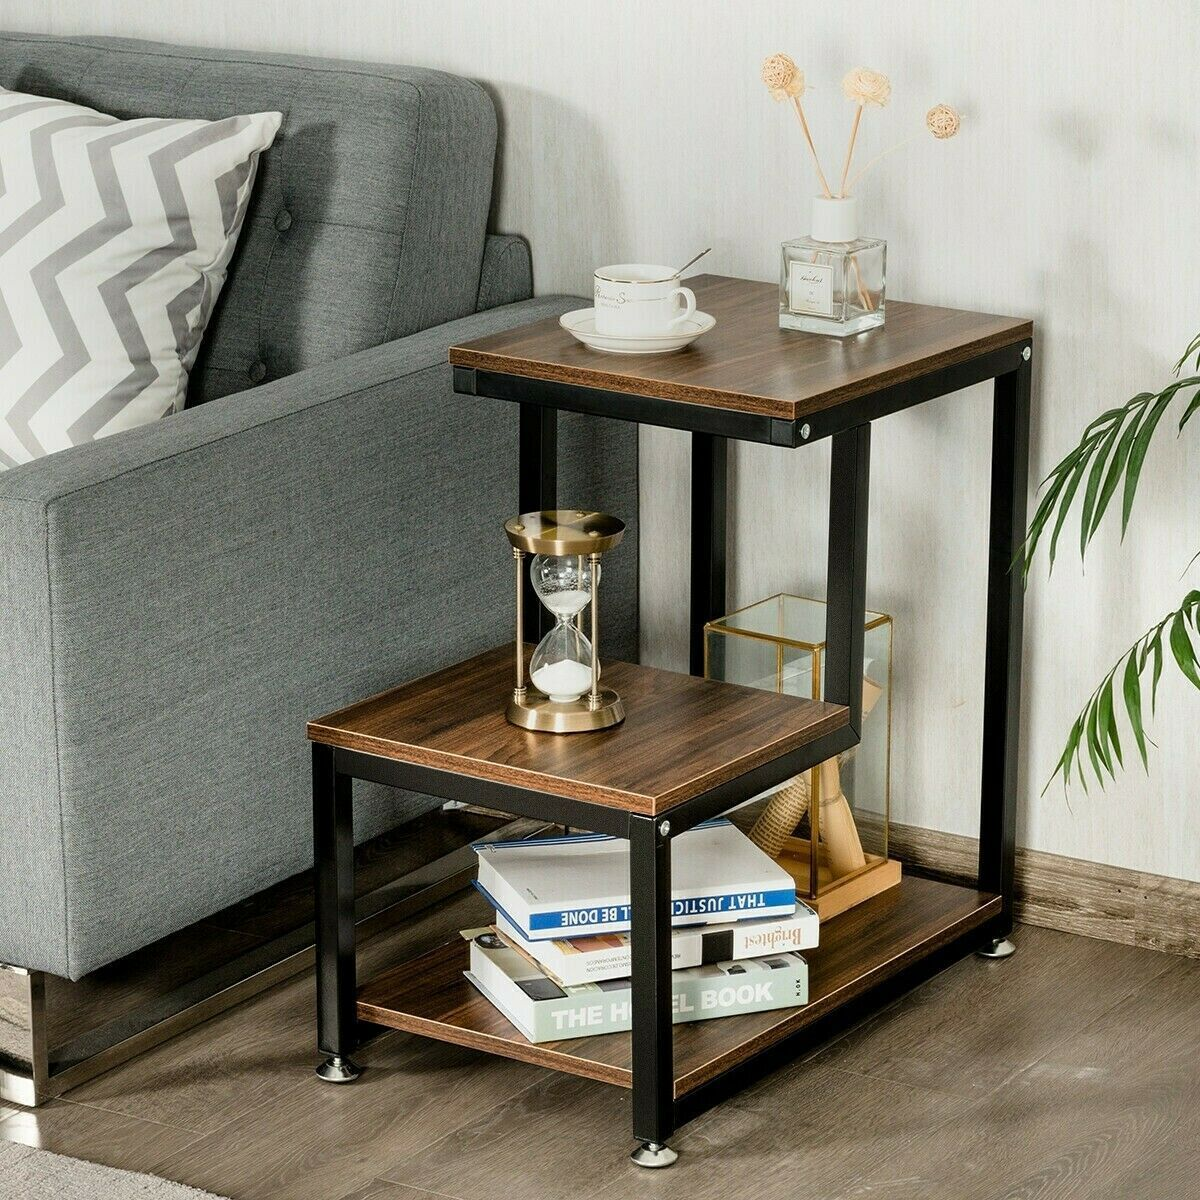 Side-table +110 Unique Living Room Furniture Pieces That Amaze Everyone